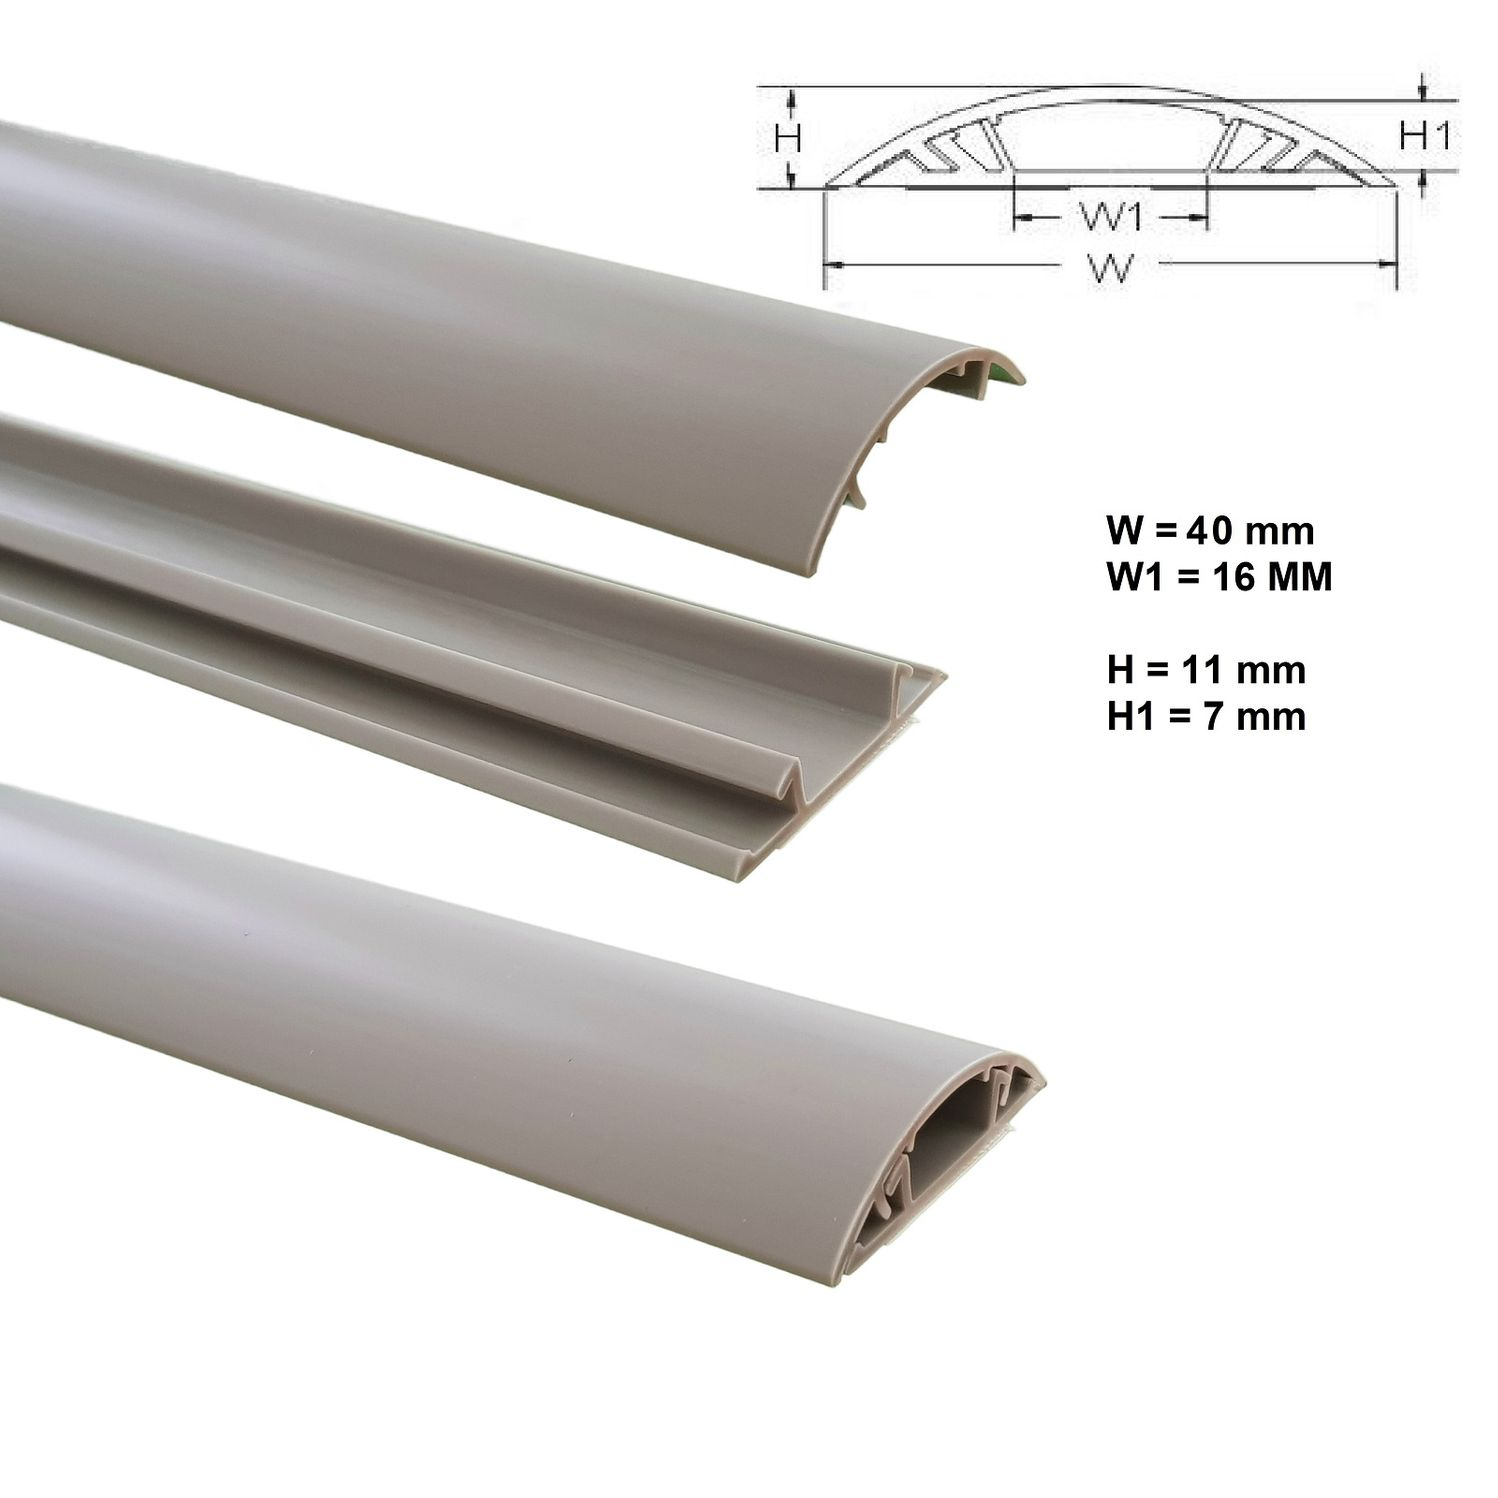 Floor wire duct 1m self-adhesive 40mms wide Cable installation Cable ...